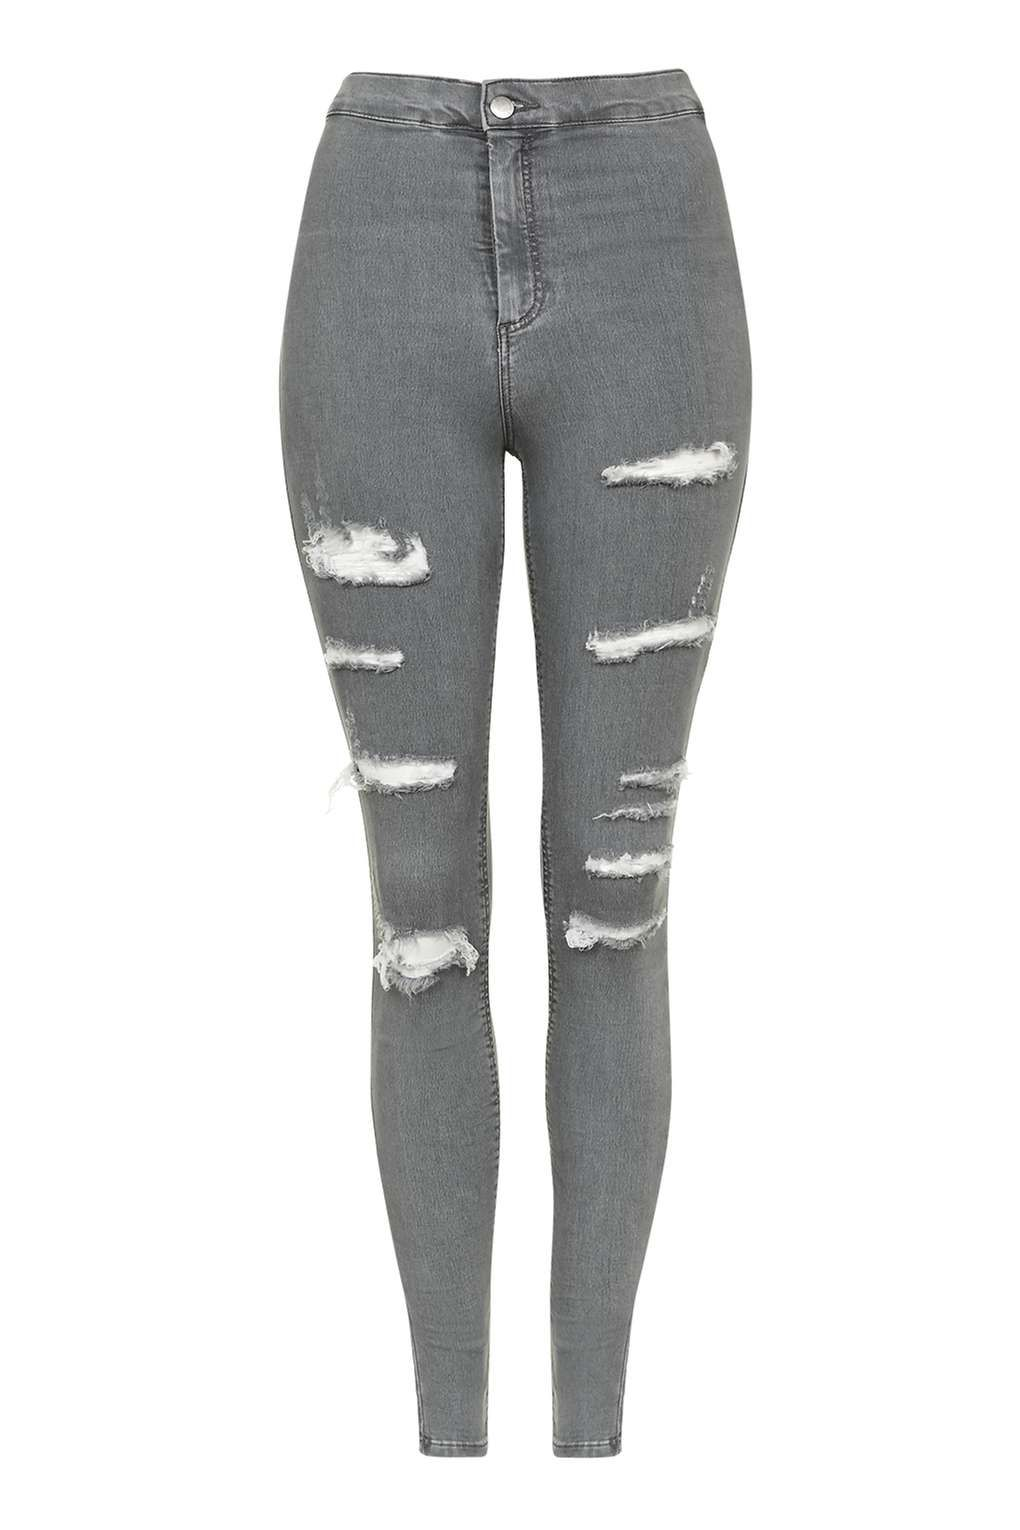 9dd8189323b Carousel Image 0 Grey Ripped Jeans, Joni Jeans, High Waisted Distressed  Jeans, Destroyed